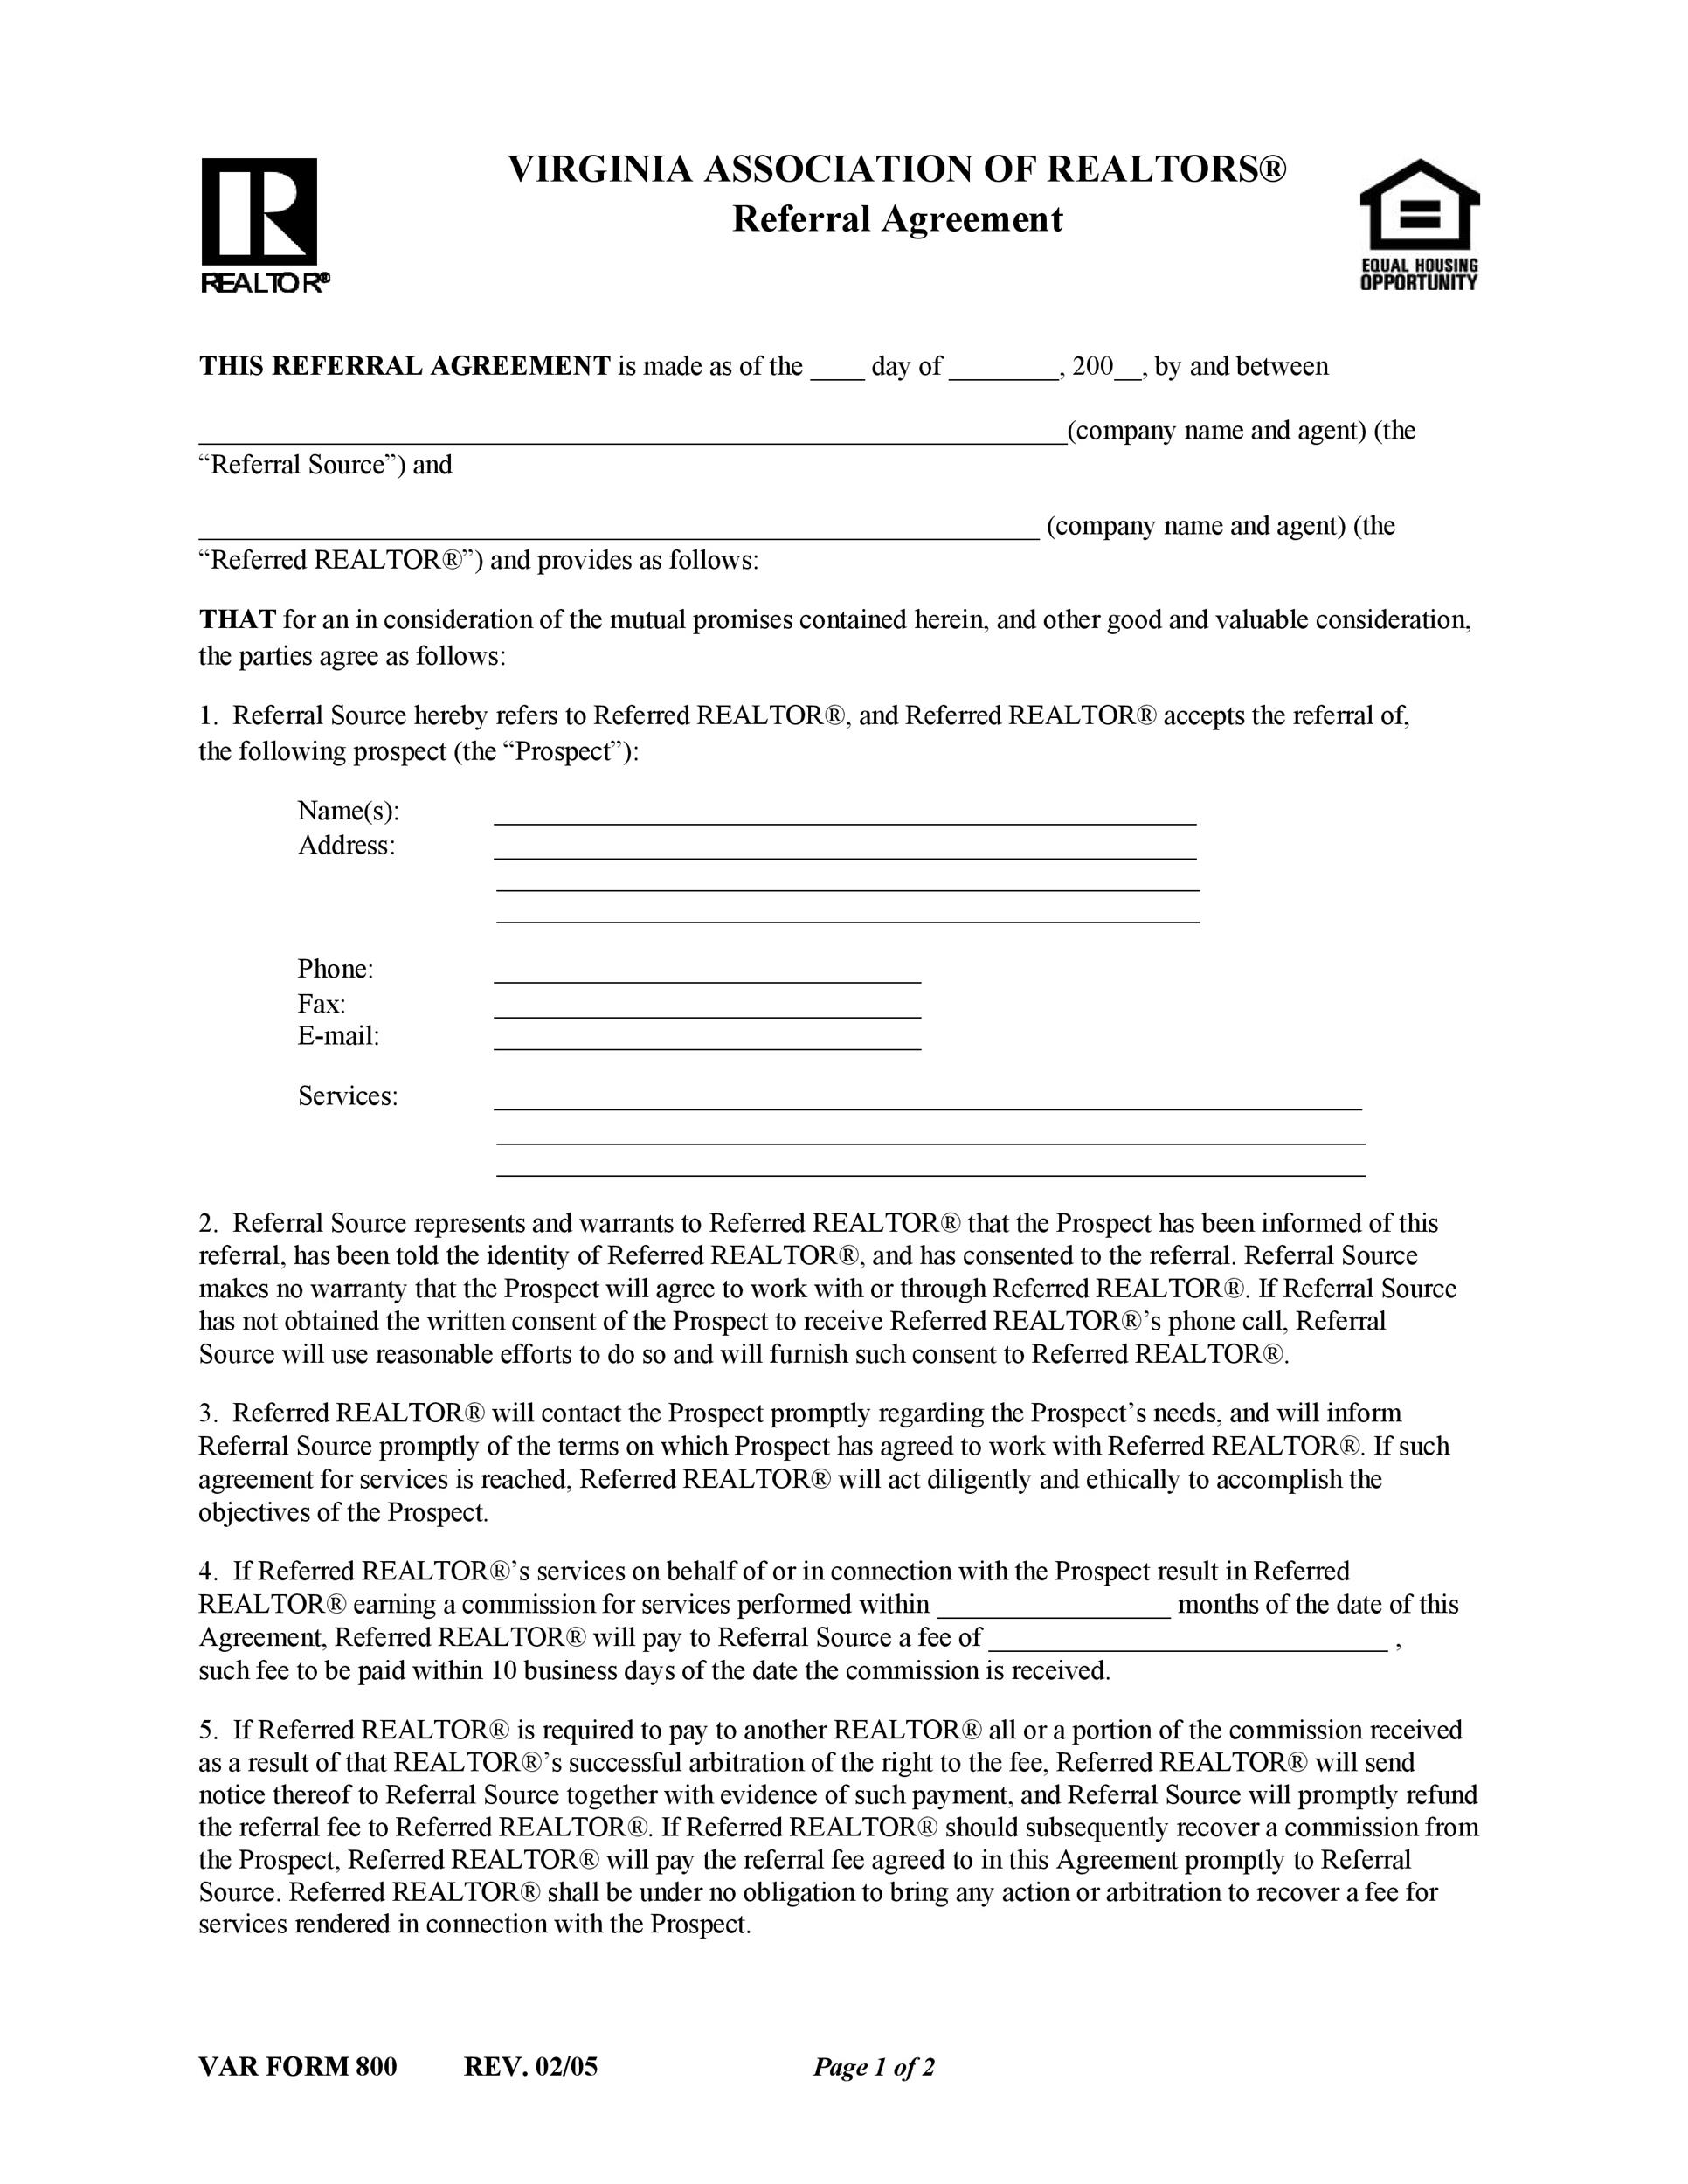 Free referral agreement template 22